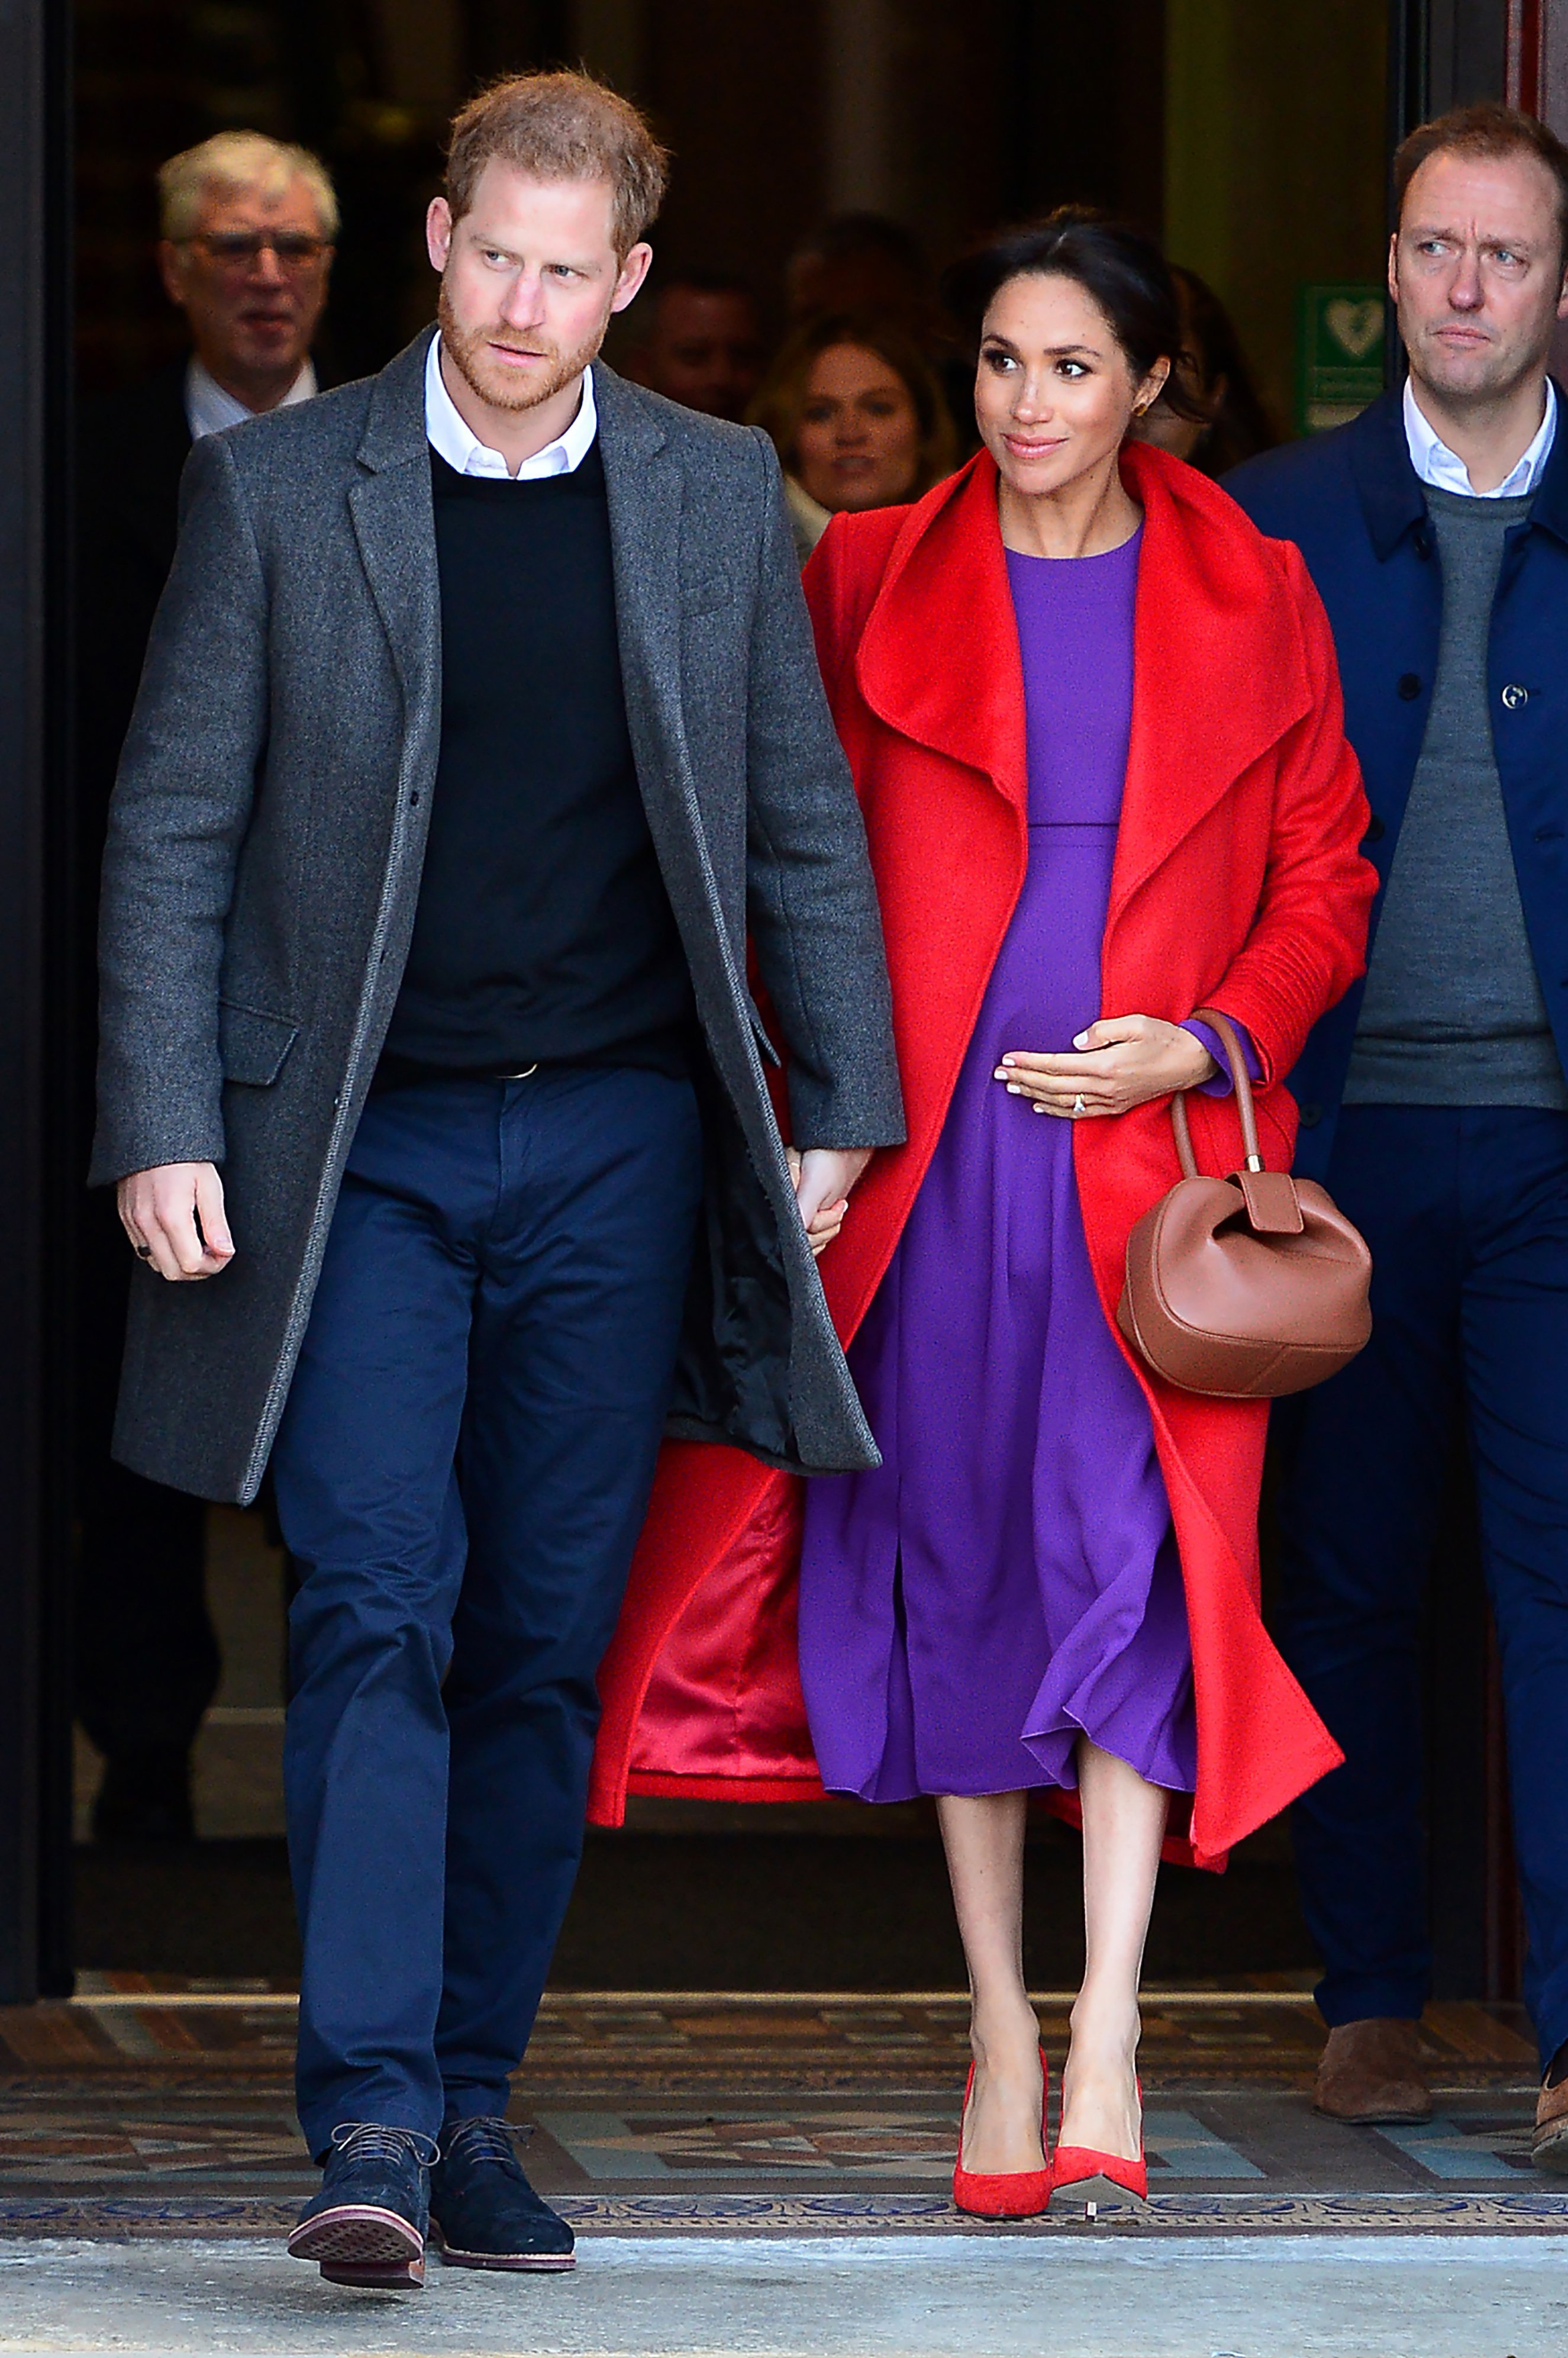 Prince Harry, Duke of Sussex and Meghan, Duchess of Sussex depart from Birkenhead Town Hall on January 14, 2019, in Birkenhead, England.   Source: Getty Images.